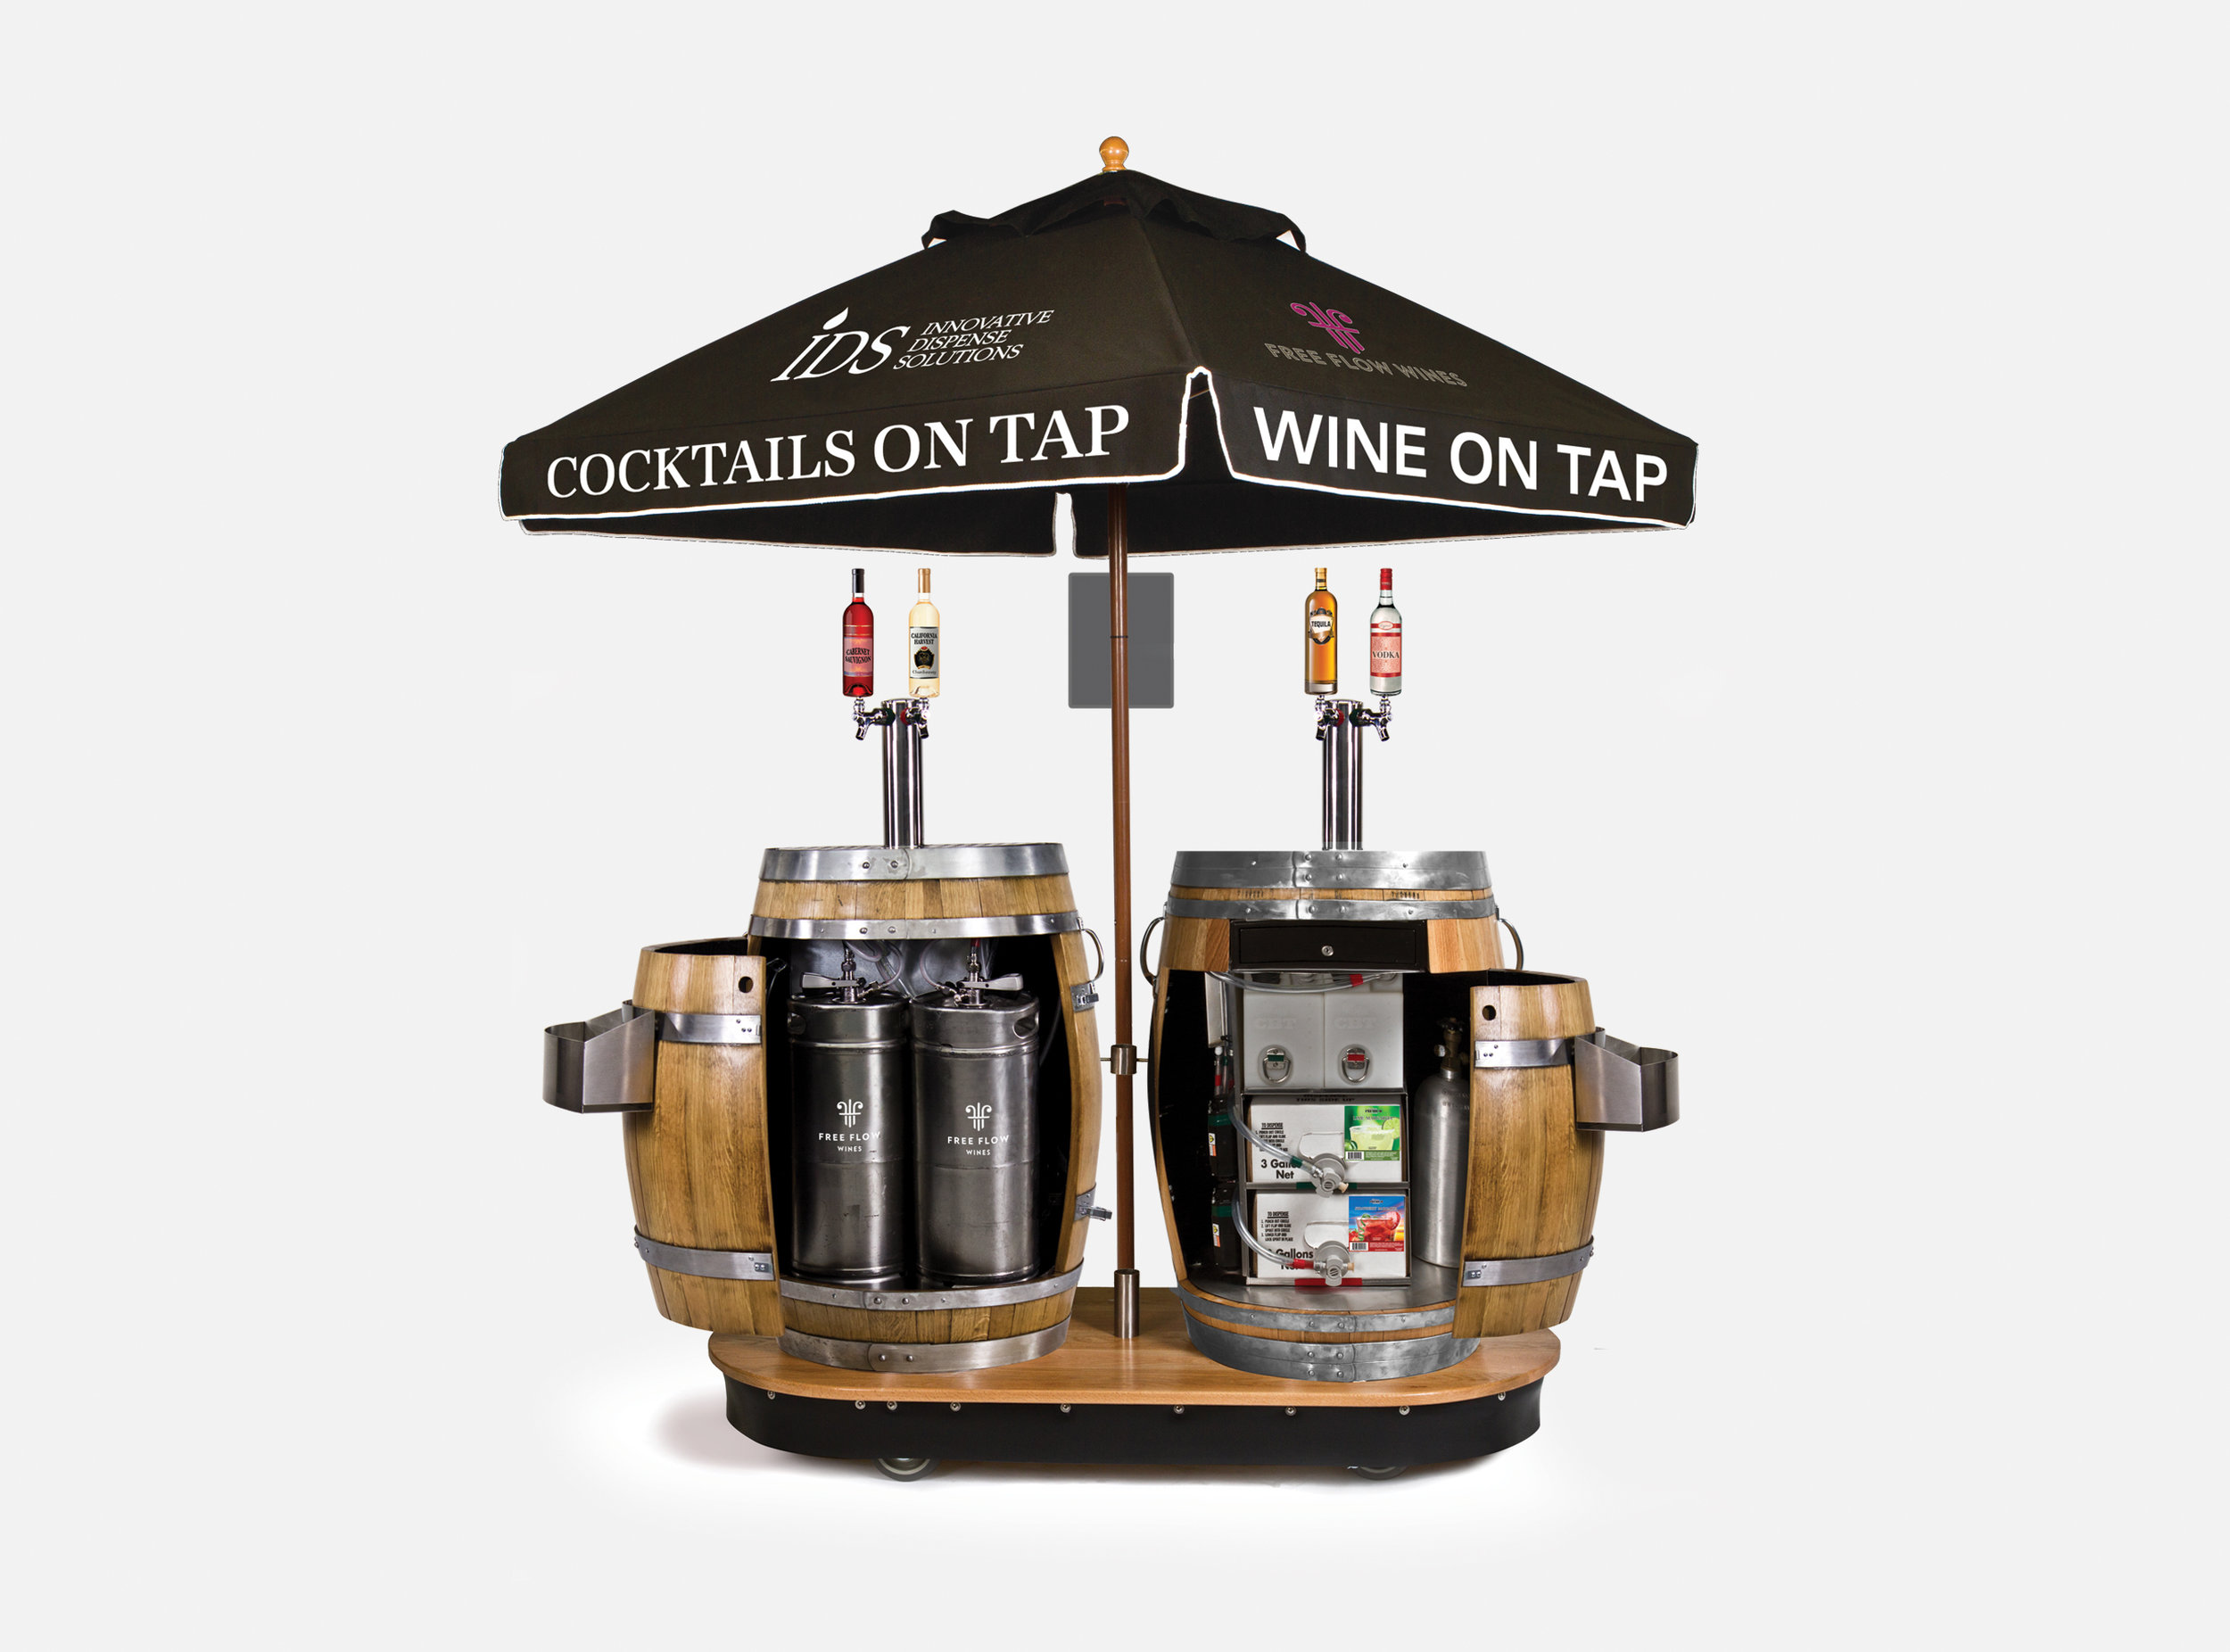 Slide-#-54-Cocktail-and-Wine-Double-Barrel-Dispensers-opened.jpg